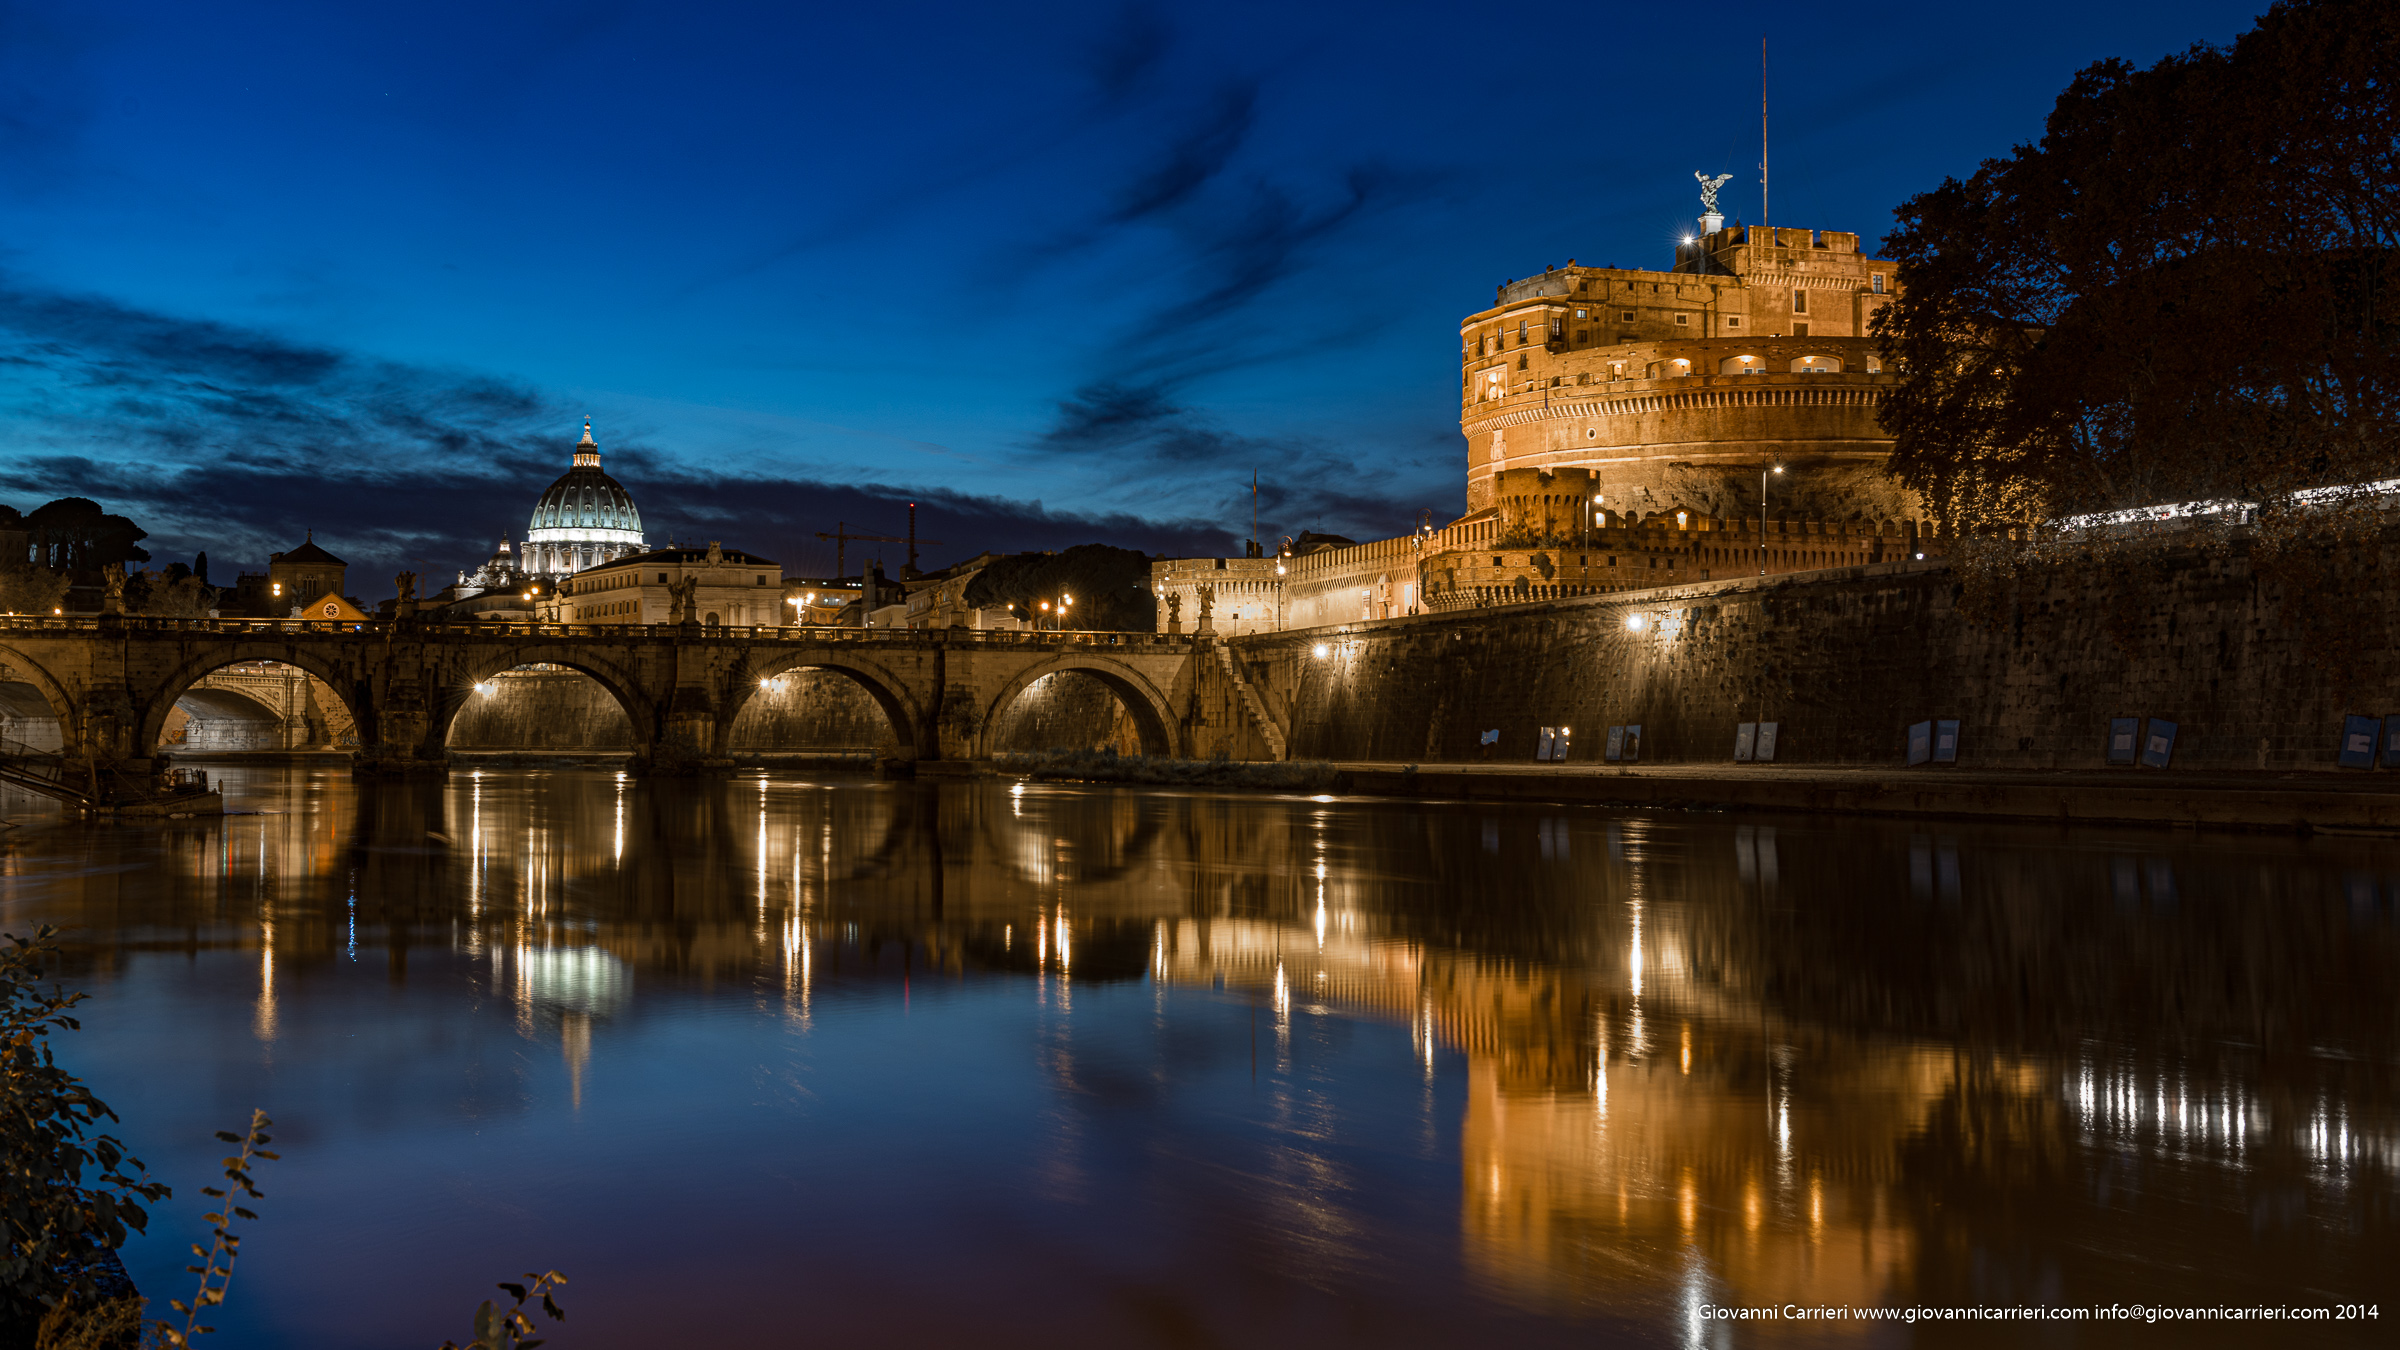 A panoramic view of Rome from the Tevere River. Castel Sant'Angelo and the Dome